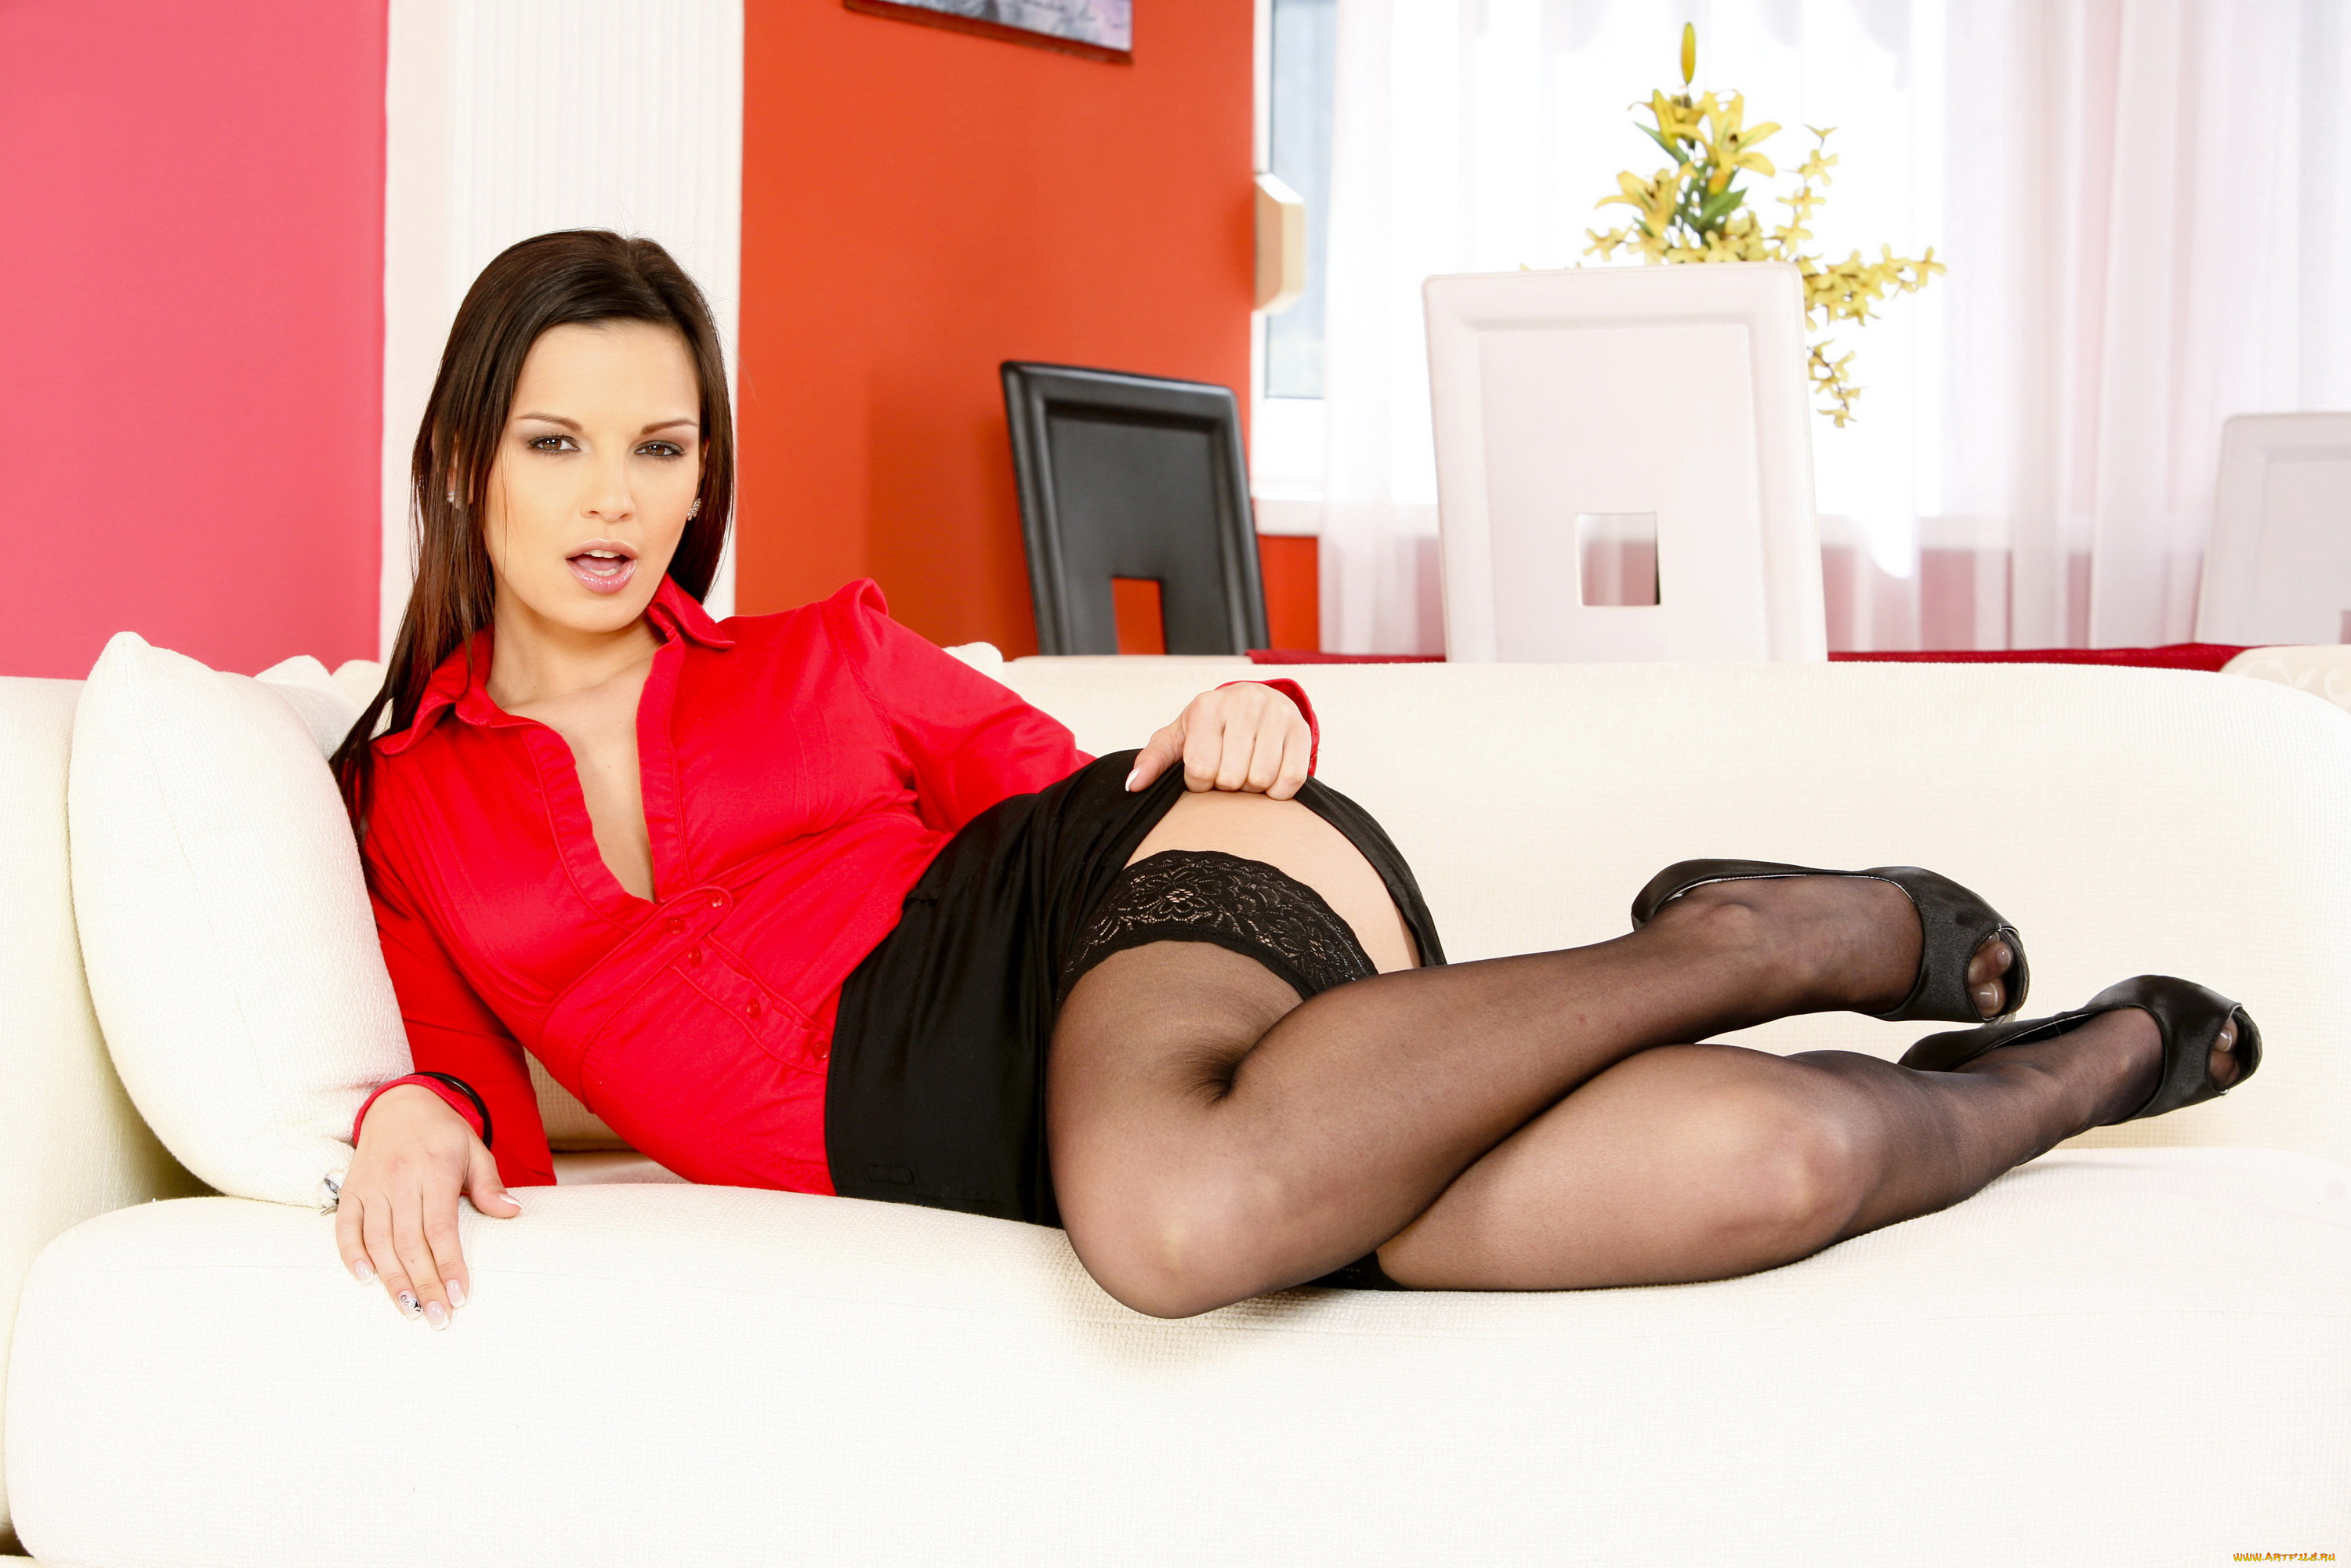 Svelte babe in stockings Leanna Sweet slipping off her suit and lingerie № 932510 бесплатно